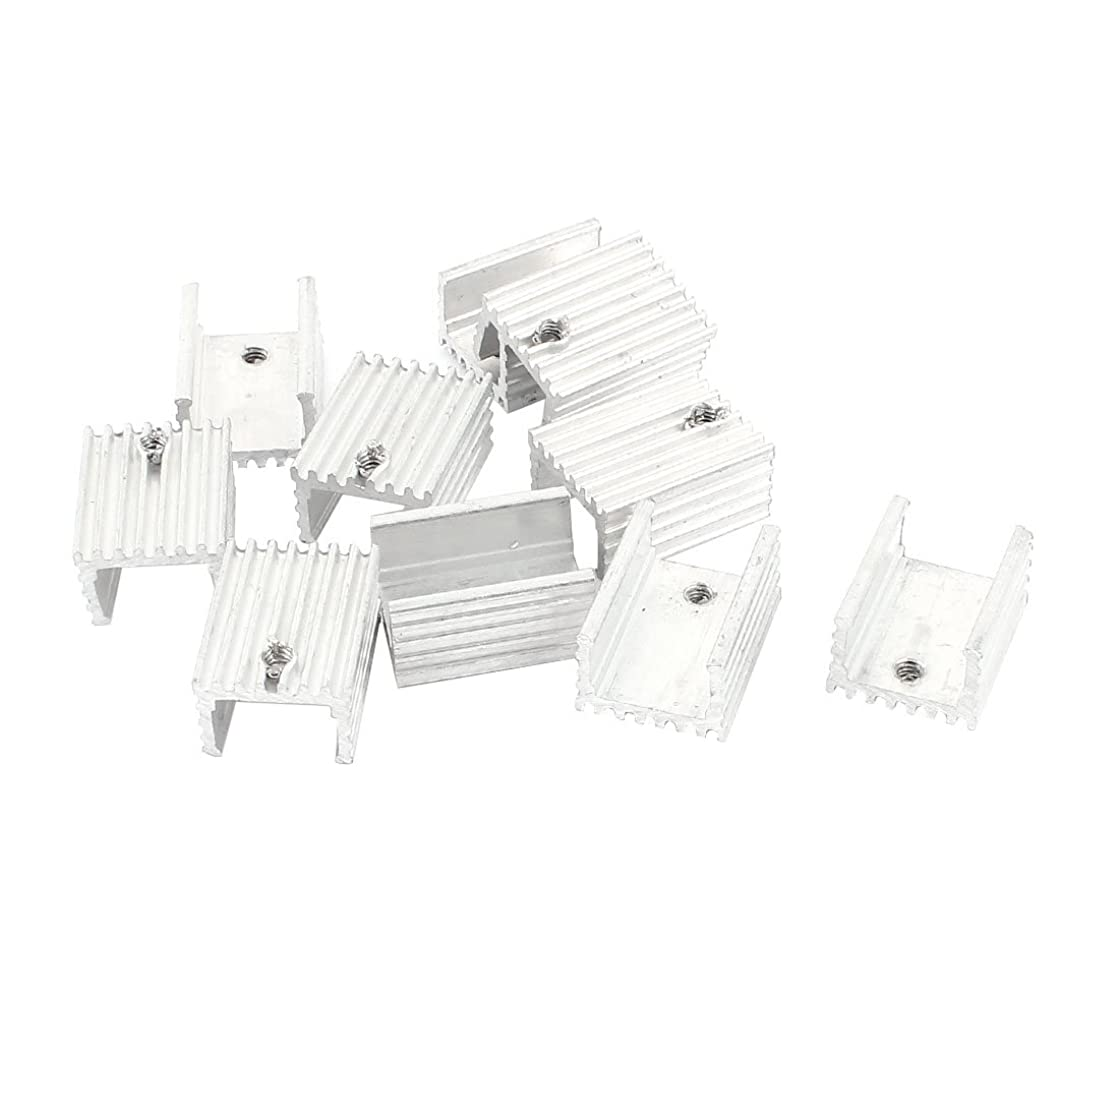 uxcell 10 x Silver Tone Aluminum Heat Sink 20x15x10mm for TO-220 Transistors